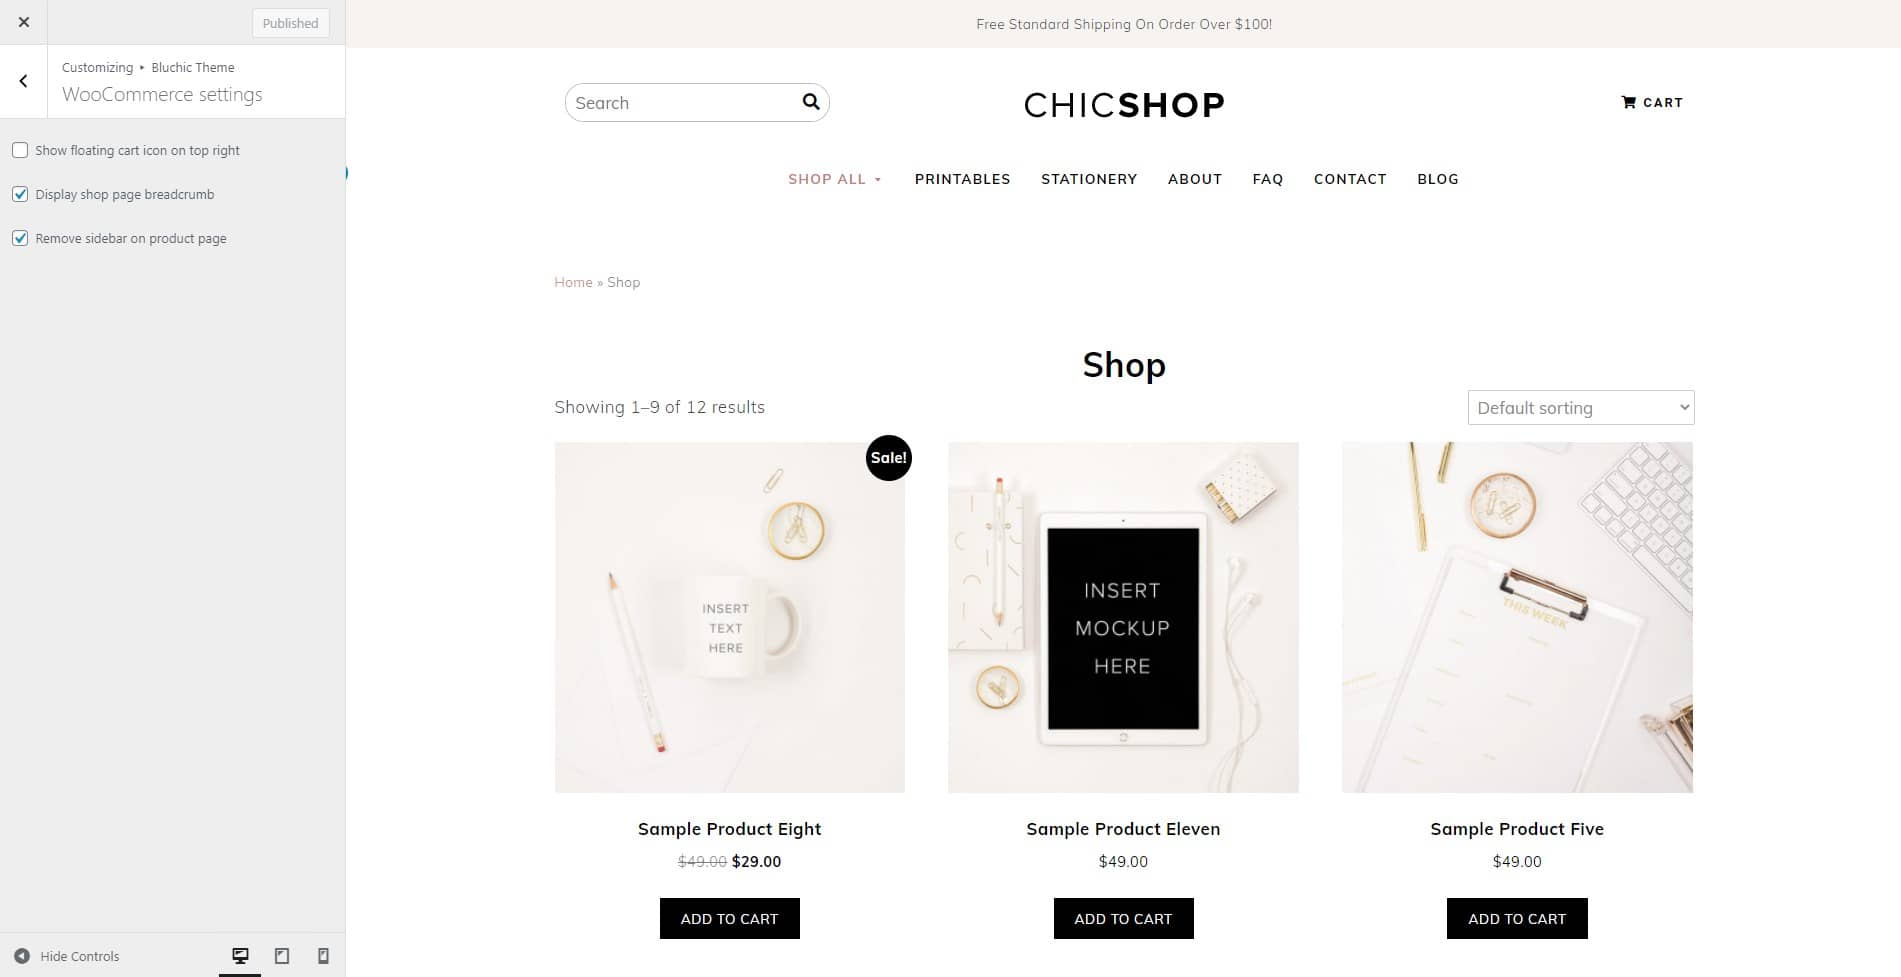 ChicShop WooCommerce settings